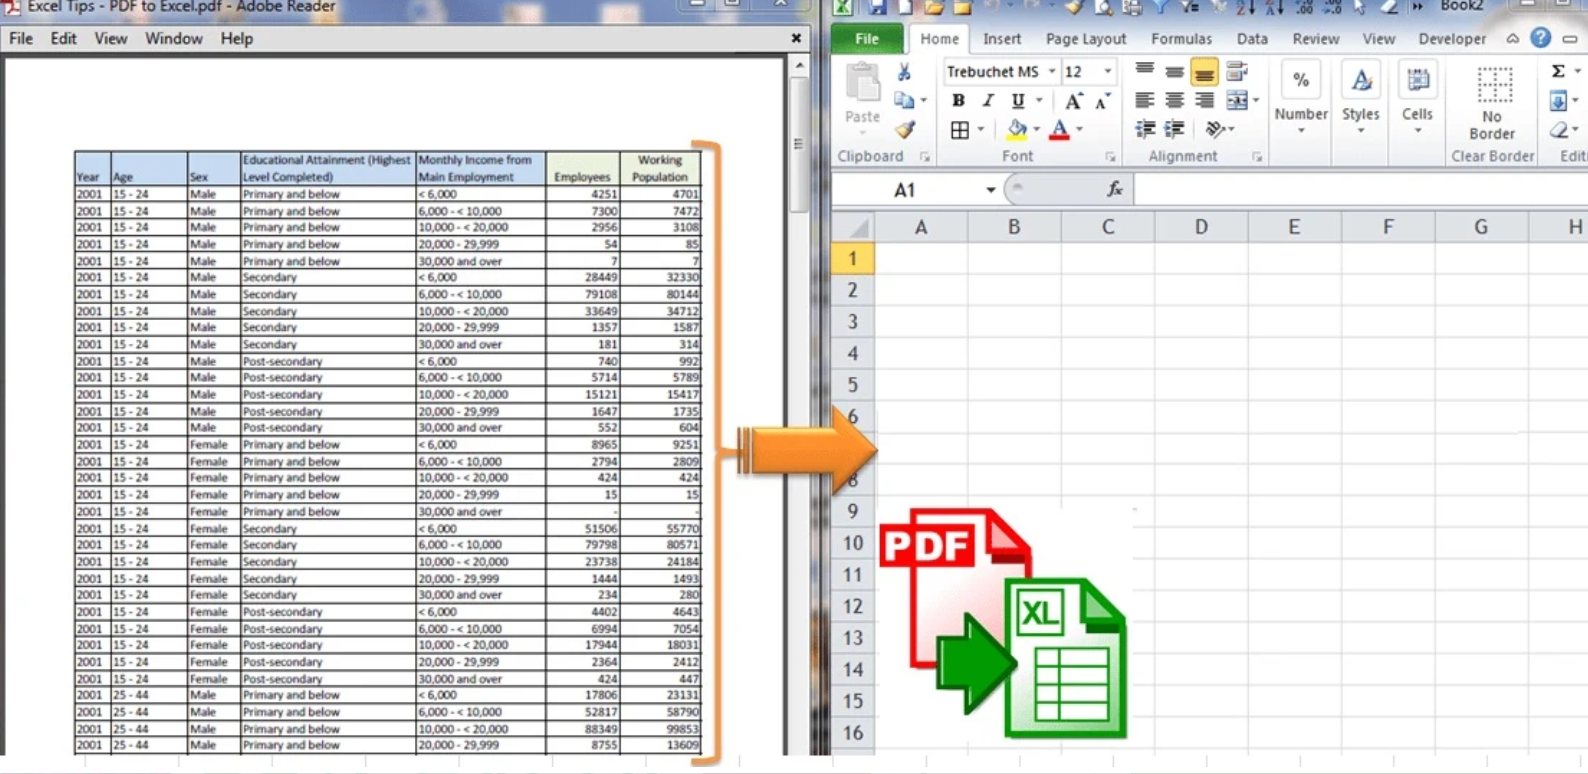 Vrtual assistant for excel data entry